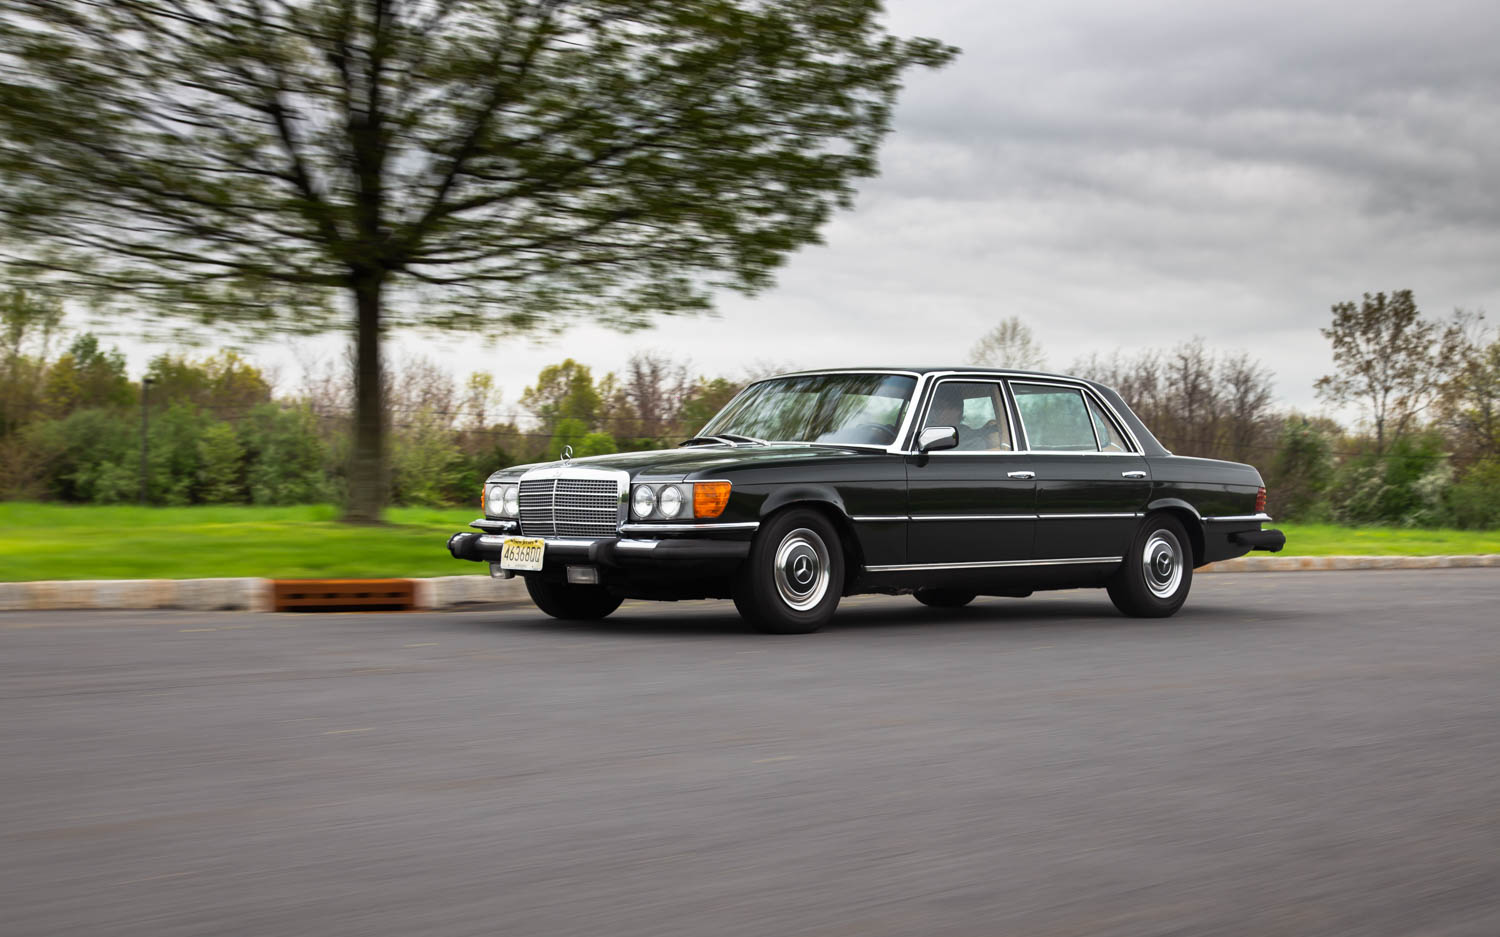 green 1974 Mercedes-Benz 450SEL driving